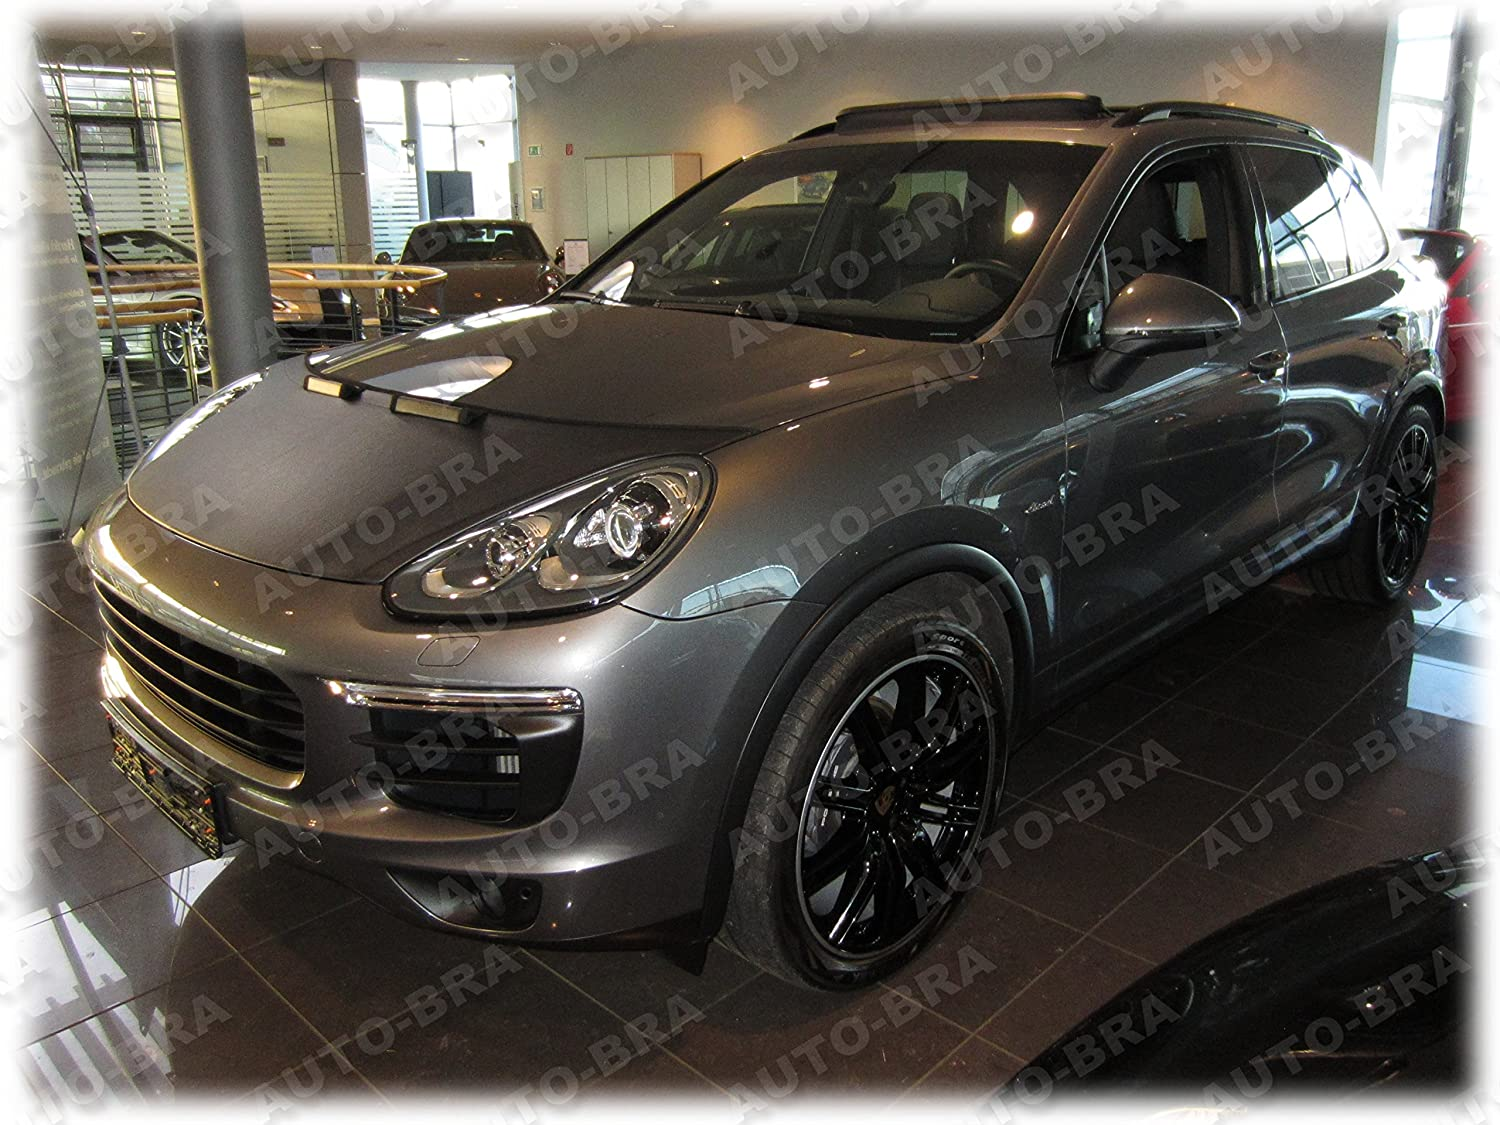 HOOD BRA Front End Nose Mask for Porsche Cayenne since 2014 Bonnet Bra STONEGUARD PROTECTOR TUNING